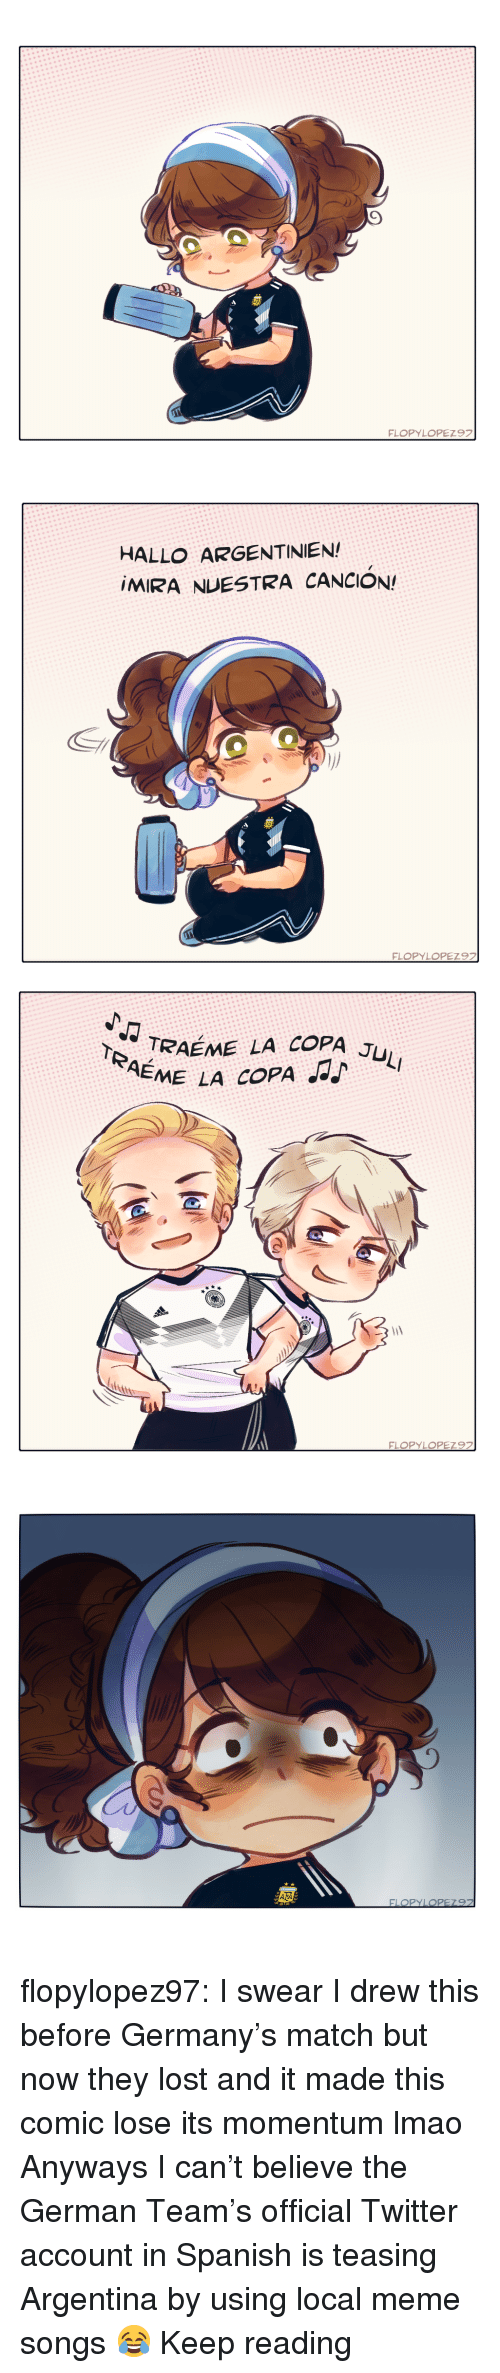 Lmao, Meme, and Spanish: HALLO ARGENTINIEN  MIRA NUESTRA CANCION!   TRAEME LA COPA J  EME LA COPA flopylopez97:  I swear I drew this before Germany's match but now they lost and it made this comic lose its momentum lmao   Anyways I can't believe the German Team's official Twitter account in Spanish is teasing Argentina by using local meme songs   😂    Keep reading